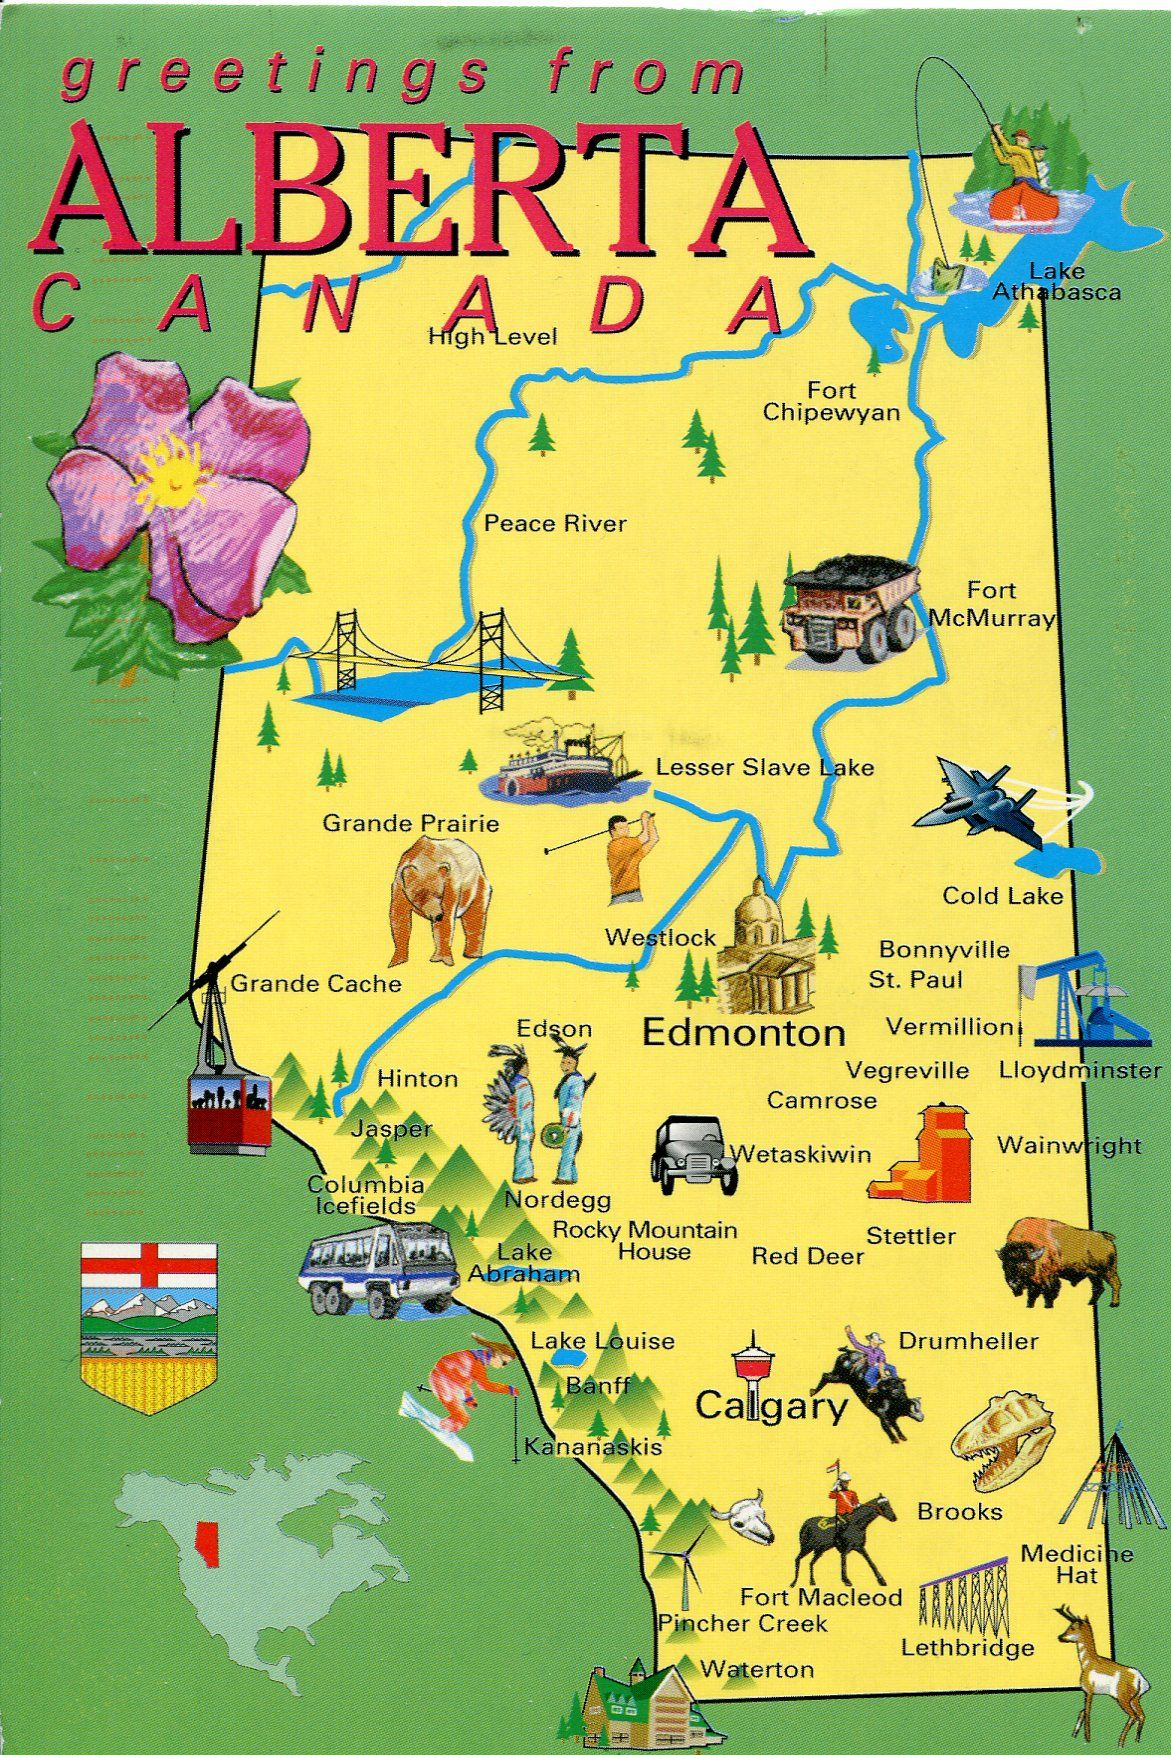 Alberta, Canada - map. Family owns land in this sector of ... on map of payphones, map of babies, map of you and me, map of writing, map of religious persecution, map of leadership, map of abuse, map of discrimination, map of hatred, map of speech, map of national area codes, map of the corporate world, map of empathy, map of racism in america, map of values, map of morality, map of homosexuality, map of police brutality, map of slang, map of ideology,